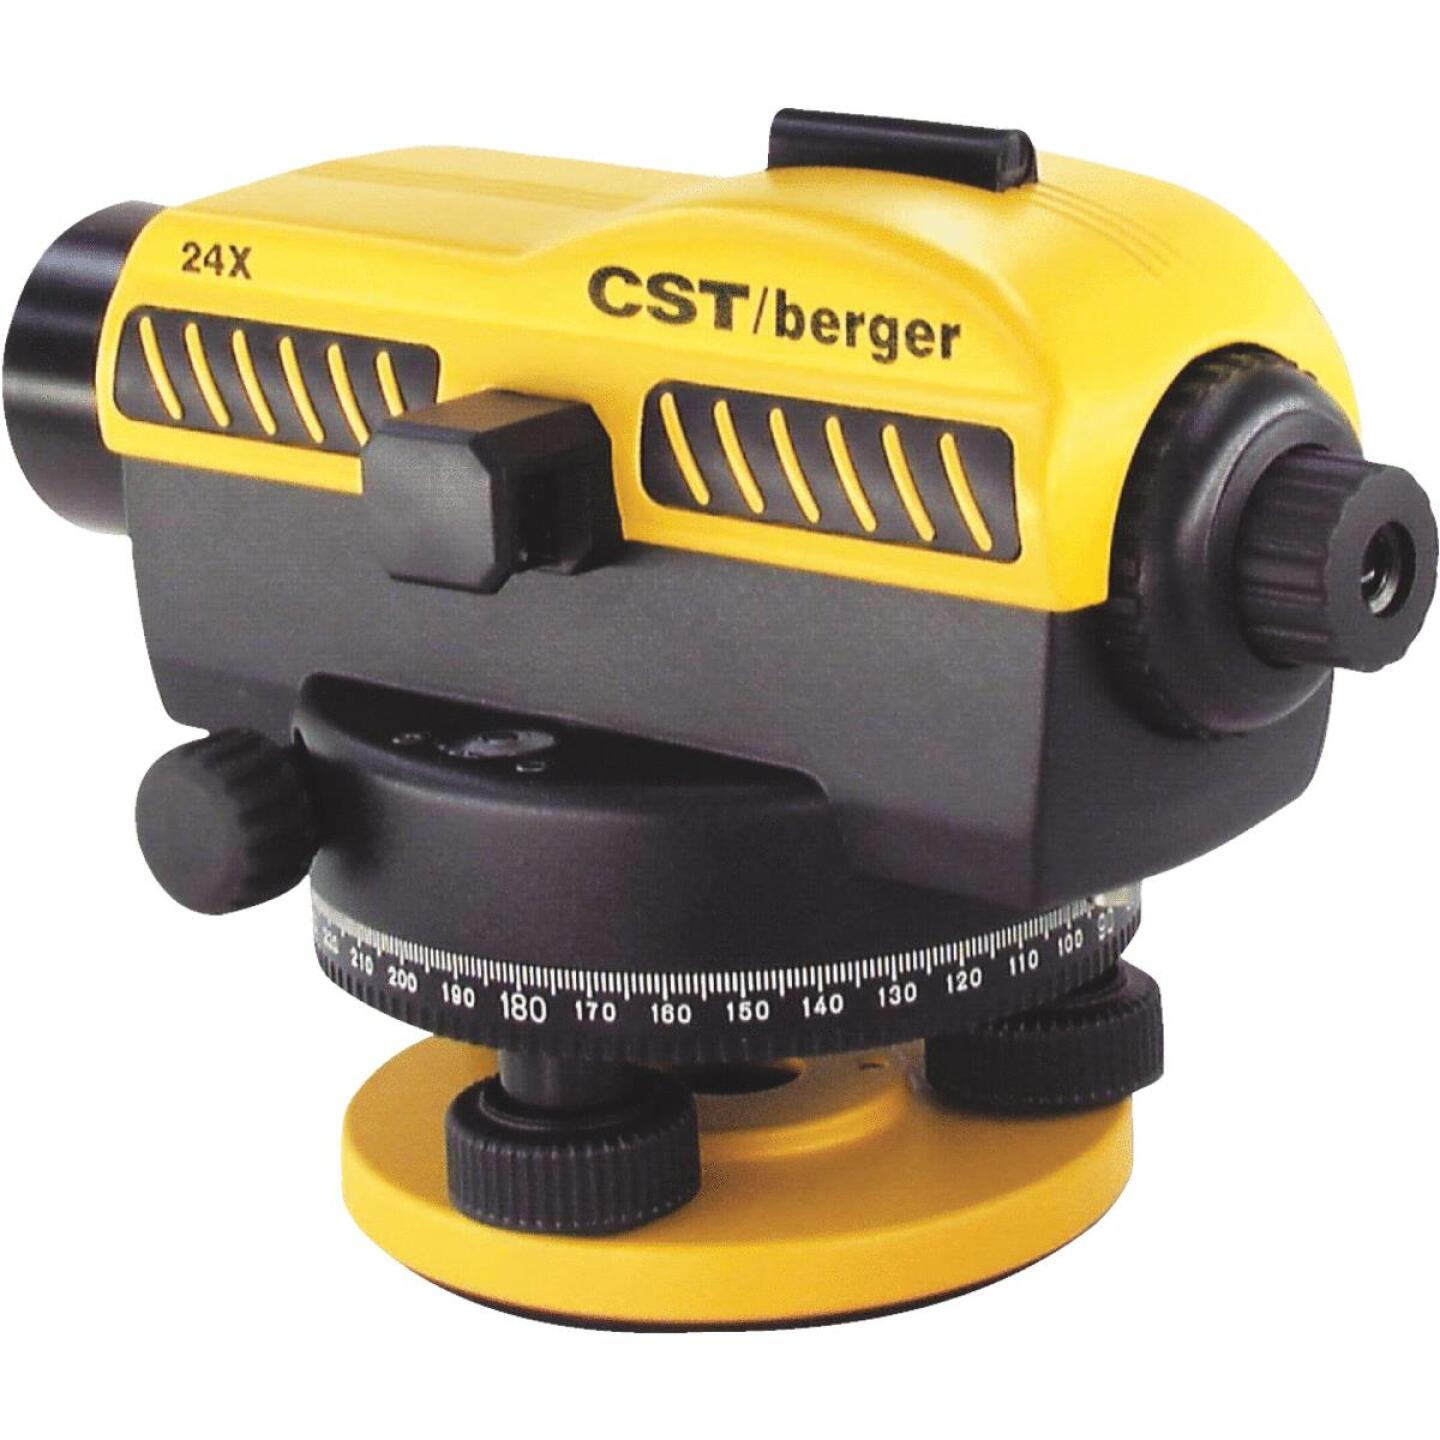 CST/berger 22X Magnifying Auto Site Level Image 1